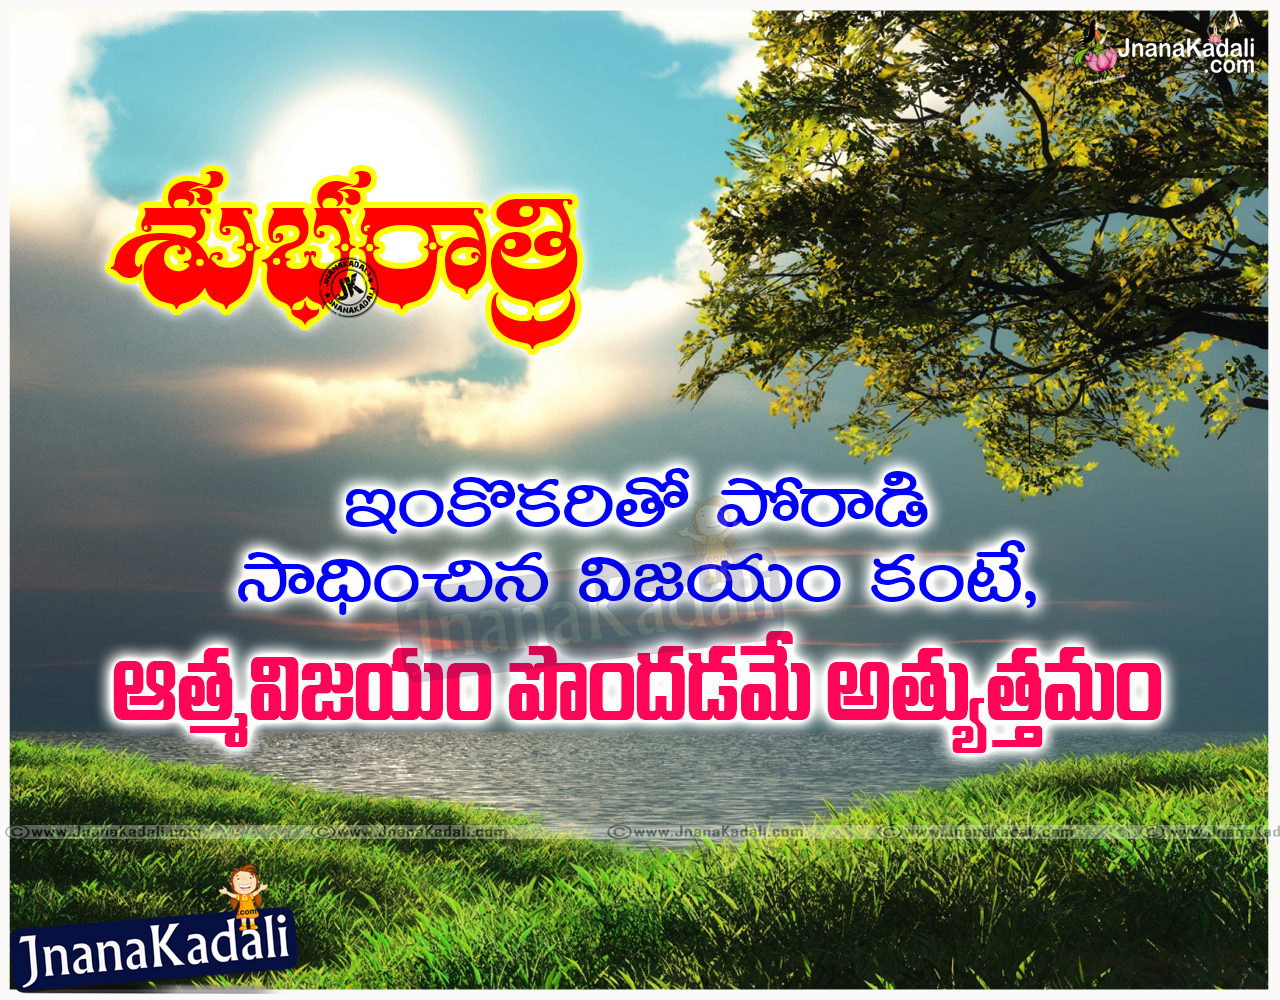 Telugu Best Good Night Greetings With Inspiring Motivated Lines For